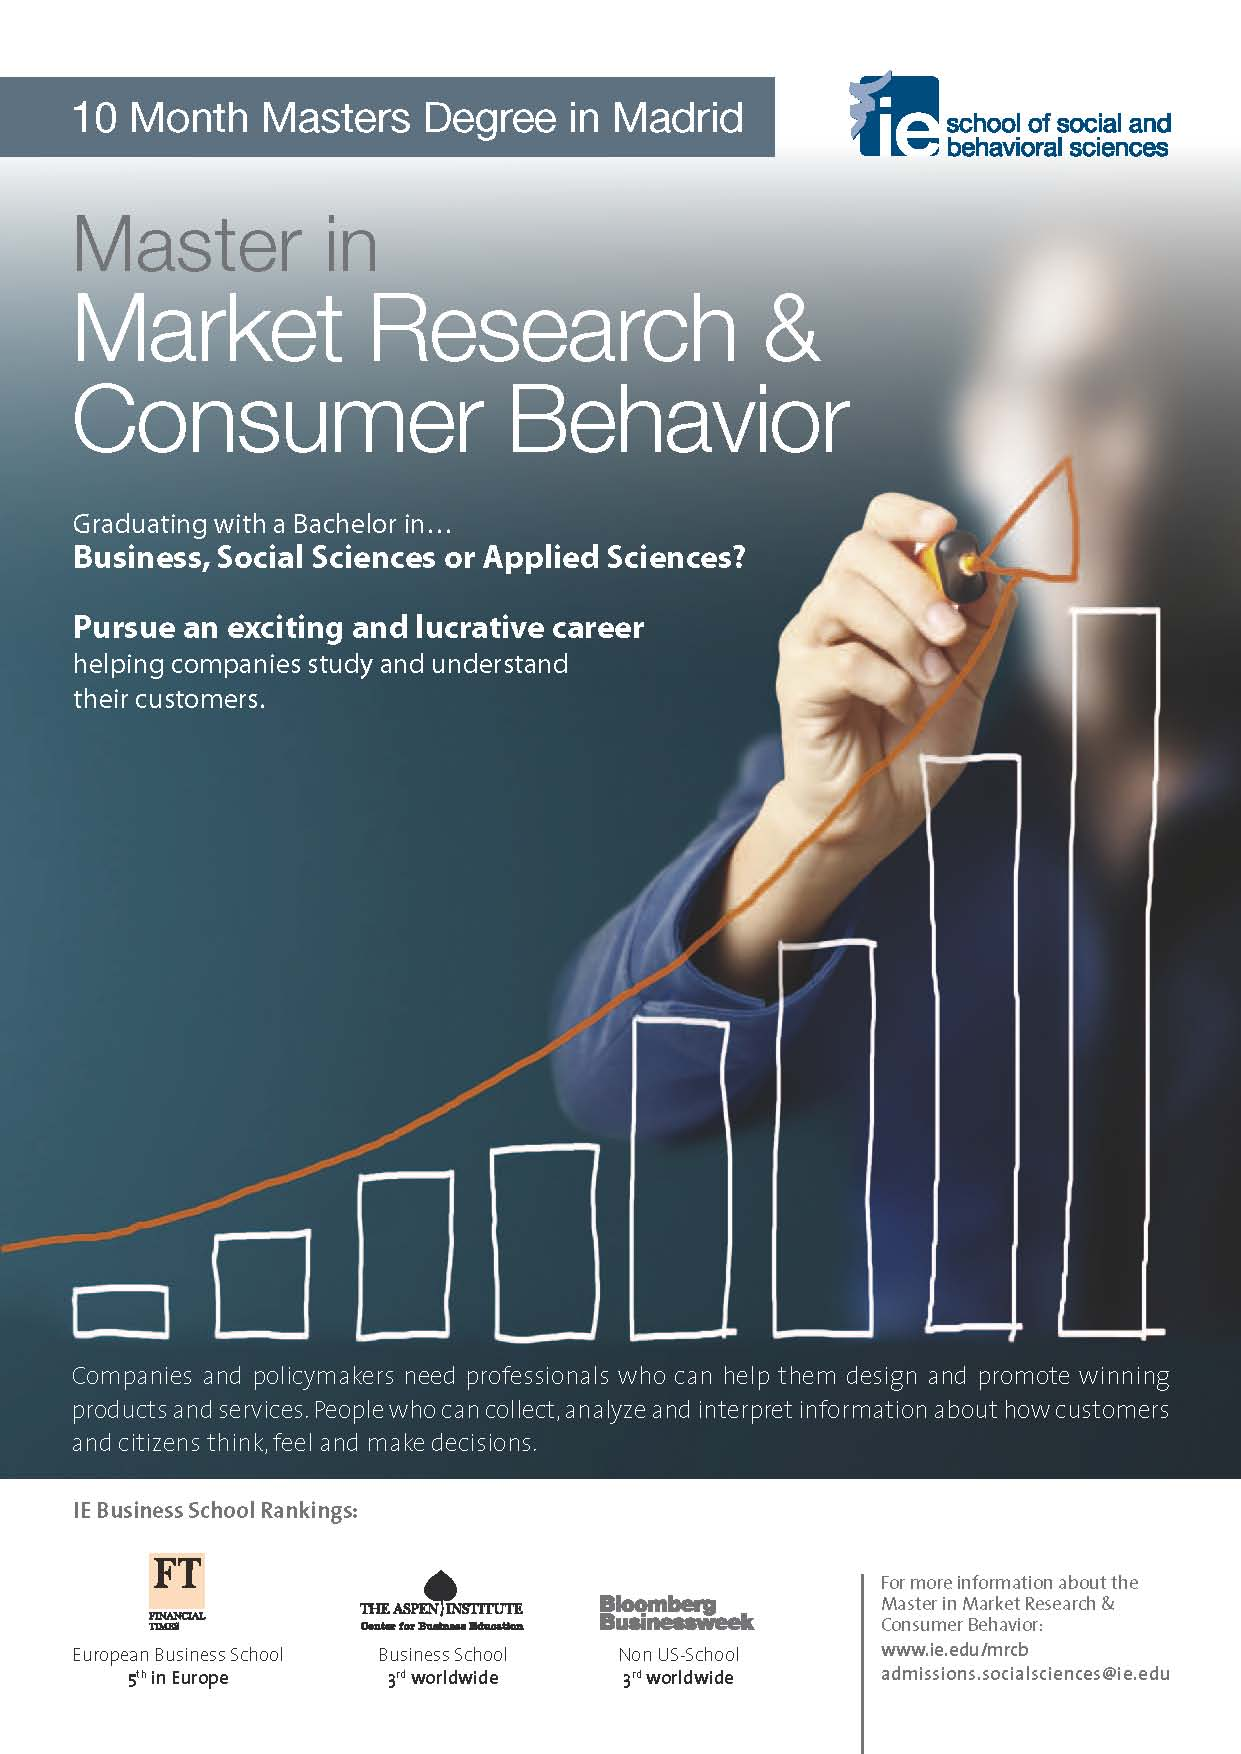 A study on consumer behavior in